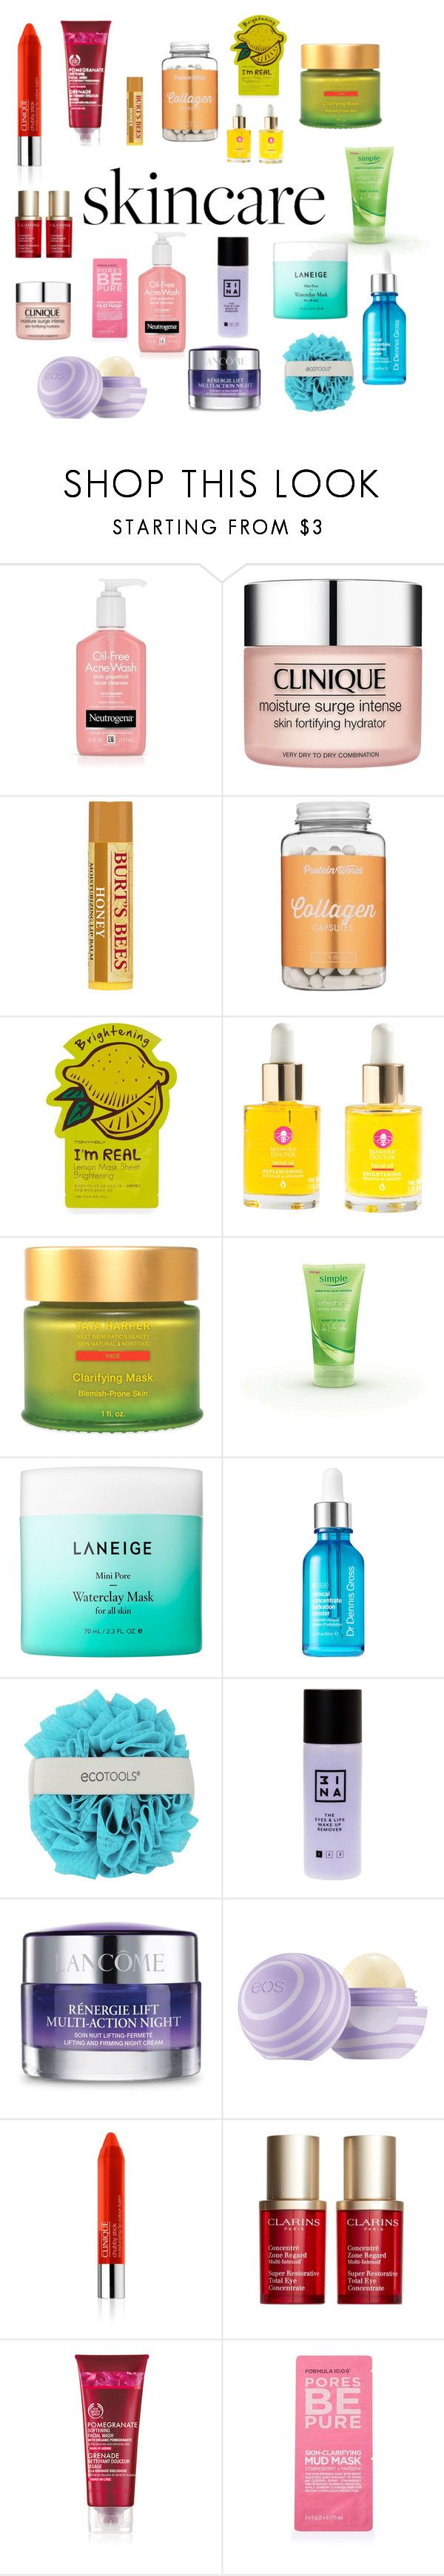 """""""Skincare!"""" by rskatz ❤ liked on Polyvore featuring beauty, SkinCare, Clinique, Tony Moly, Manuka Doctor, Tata Harper, Laneige, 3ina, Lancôme and Clarins"""